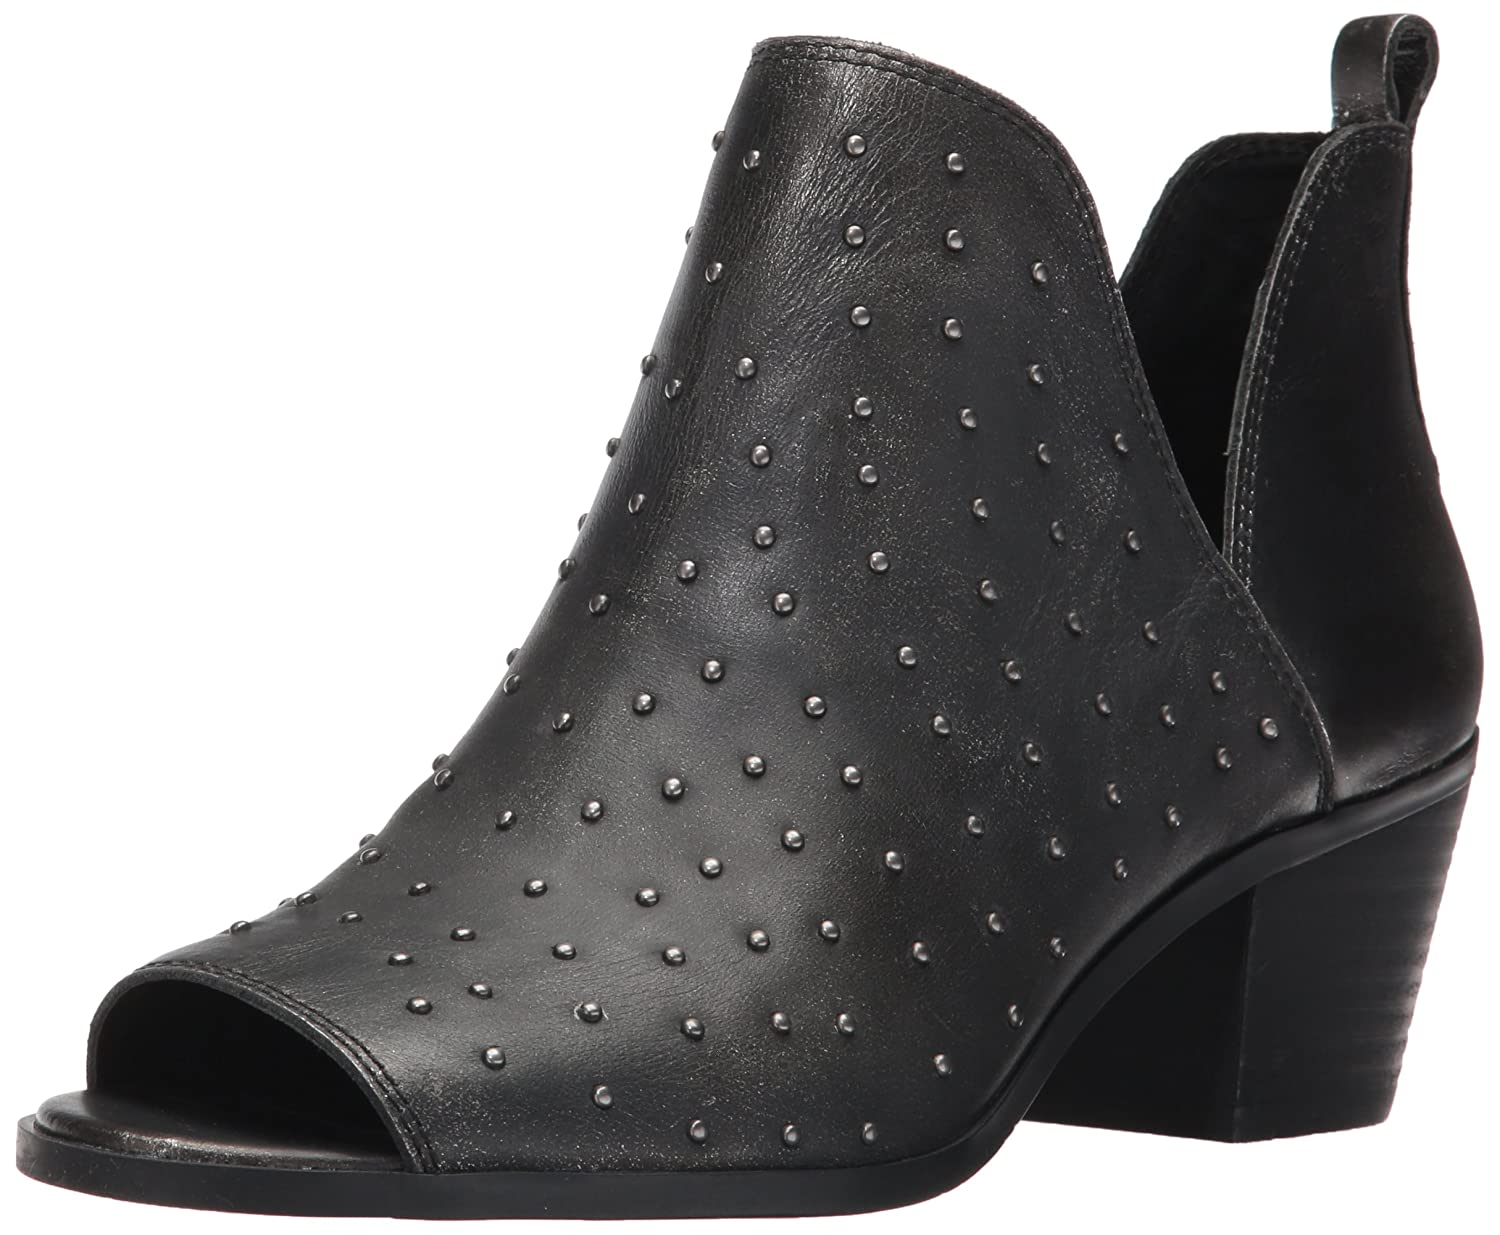 Lucky Brand Women's Barlenna Ankle Boot B06XS4VDPD 8 B(M) US|Black/Silver